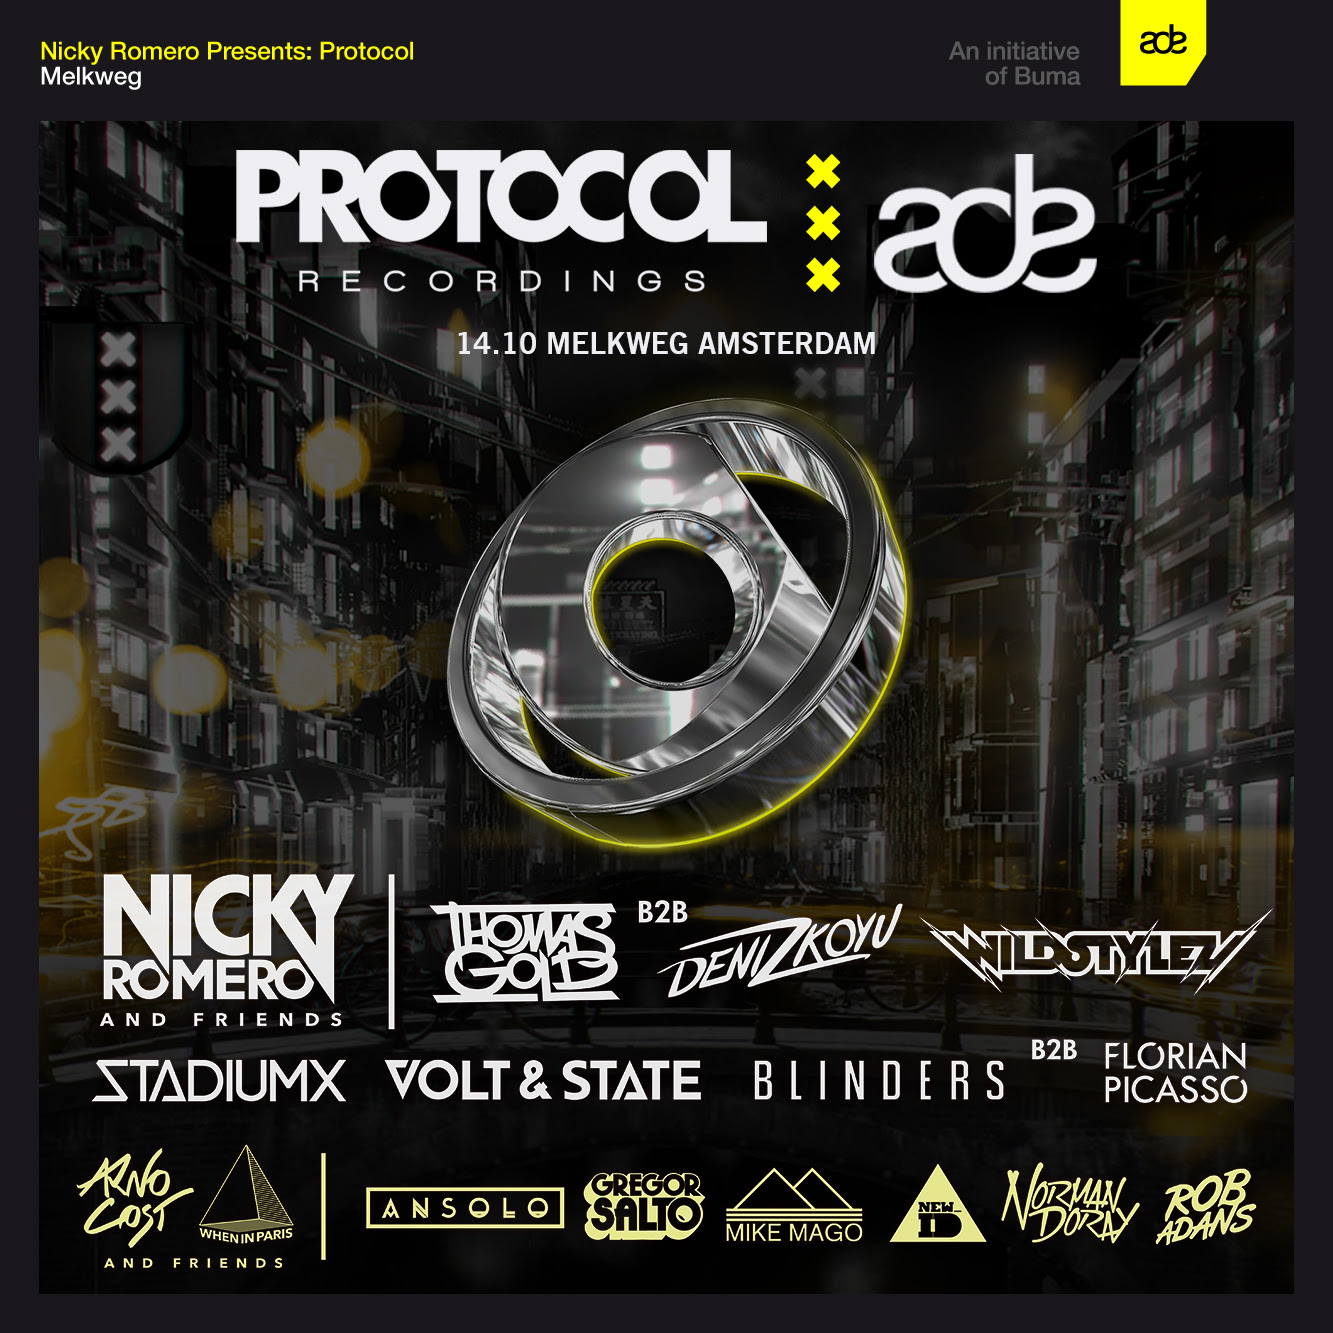 download → Blinders b2b Florian Picasso - live at Protocol Recordings, Amsterdam Dance Event 2015 (Club Melkweg) - 14-Oct-2015